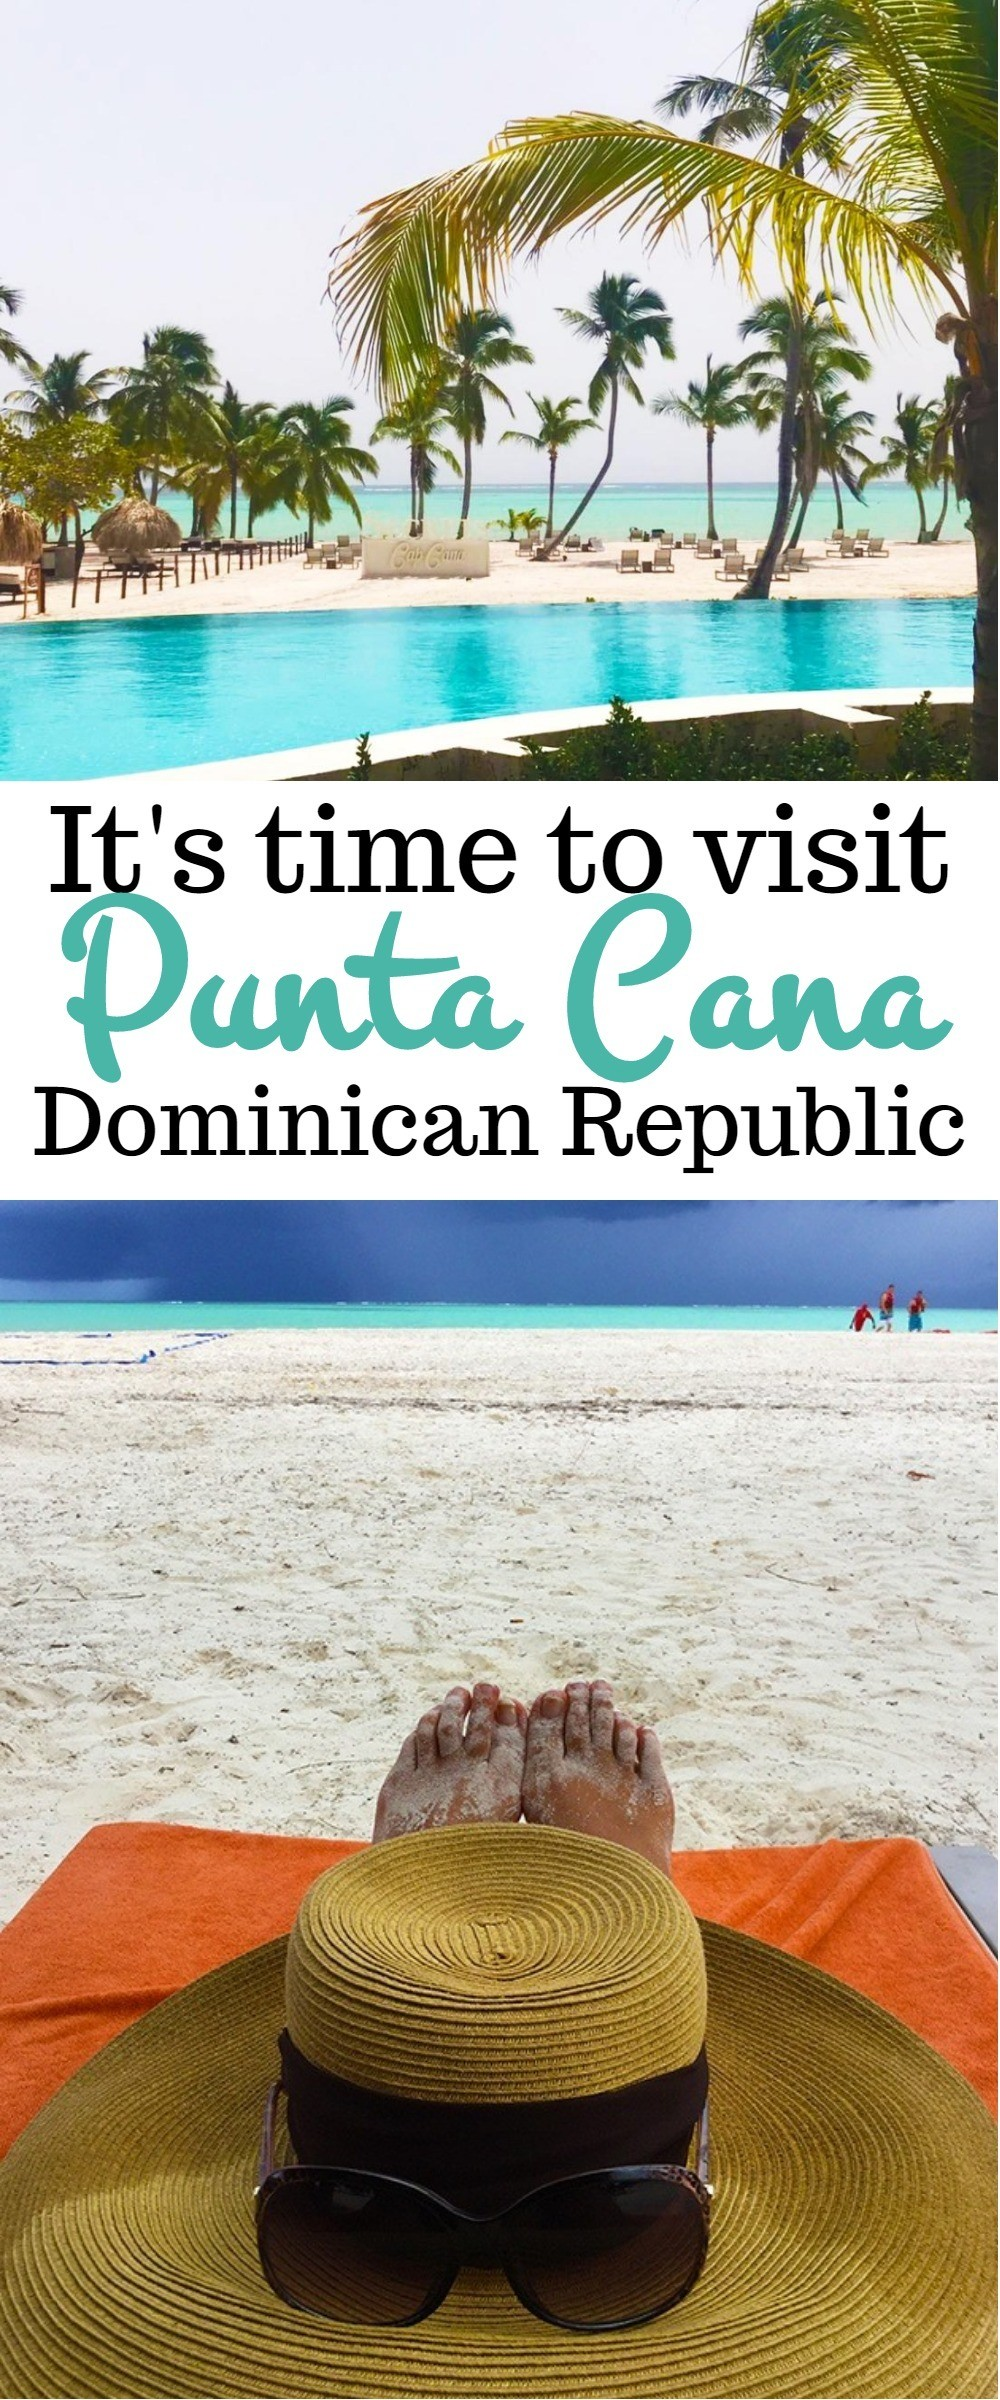 Time to visit punta cana dominican republic for a for Punta cana dominican republic vacation